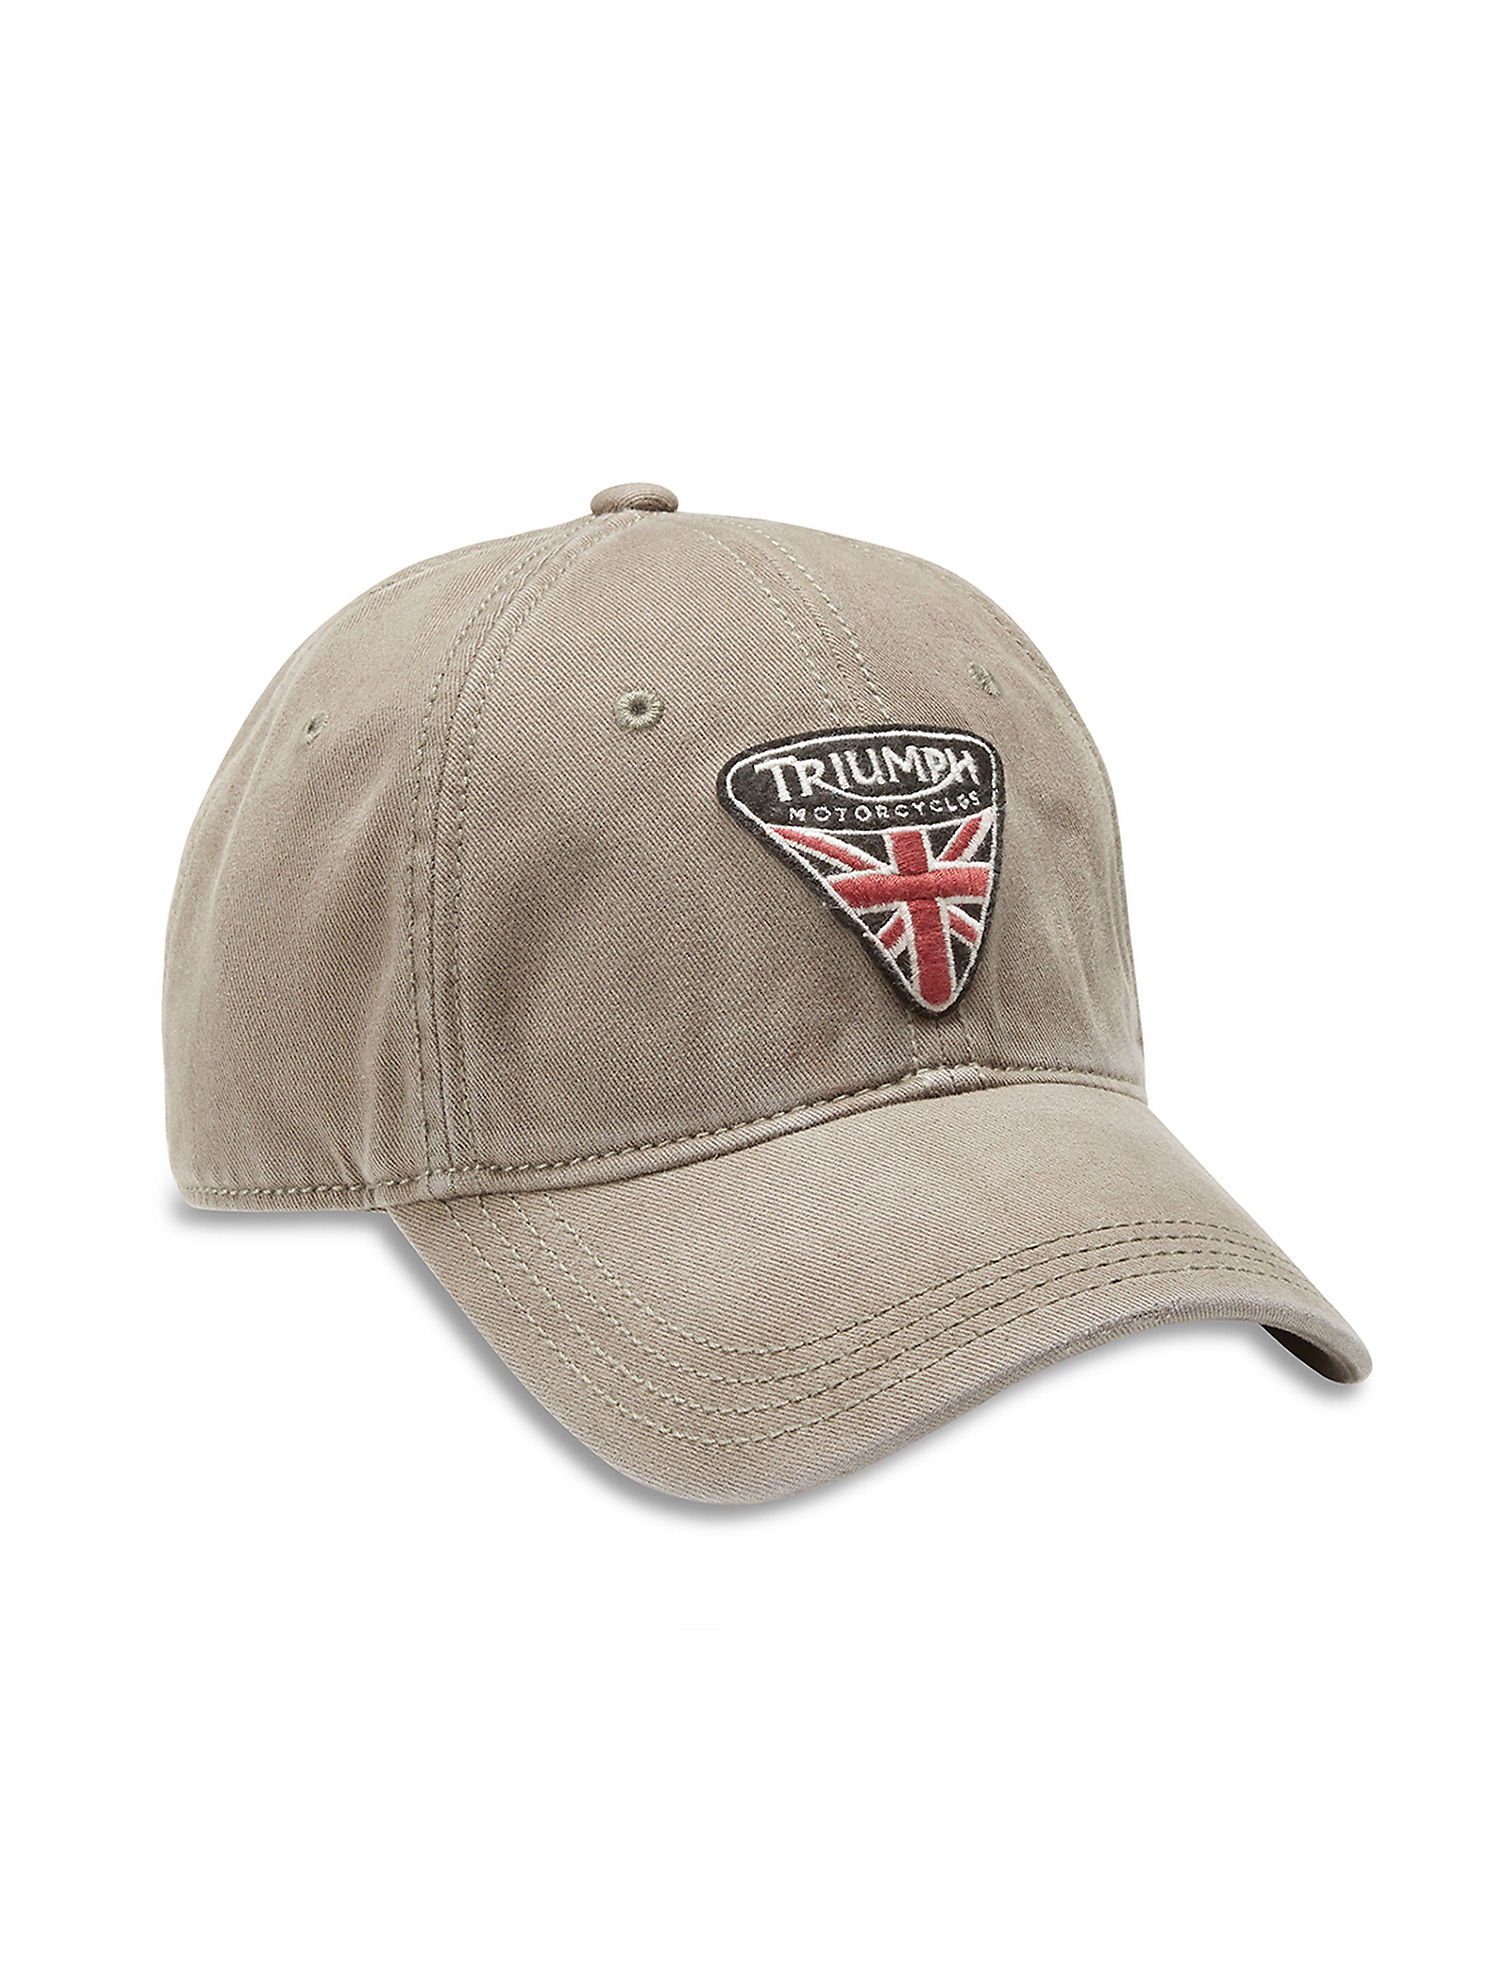 baccd396422 TRIUMPH MOTORCYCLES BASEBALL HAT - Lucky Brand - Canada